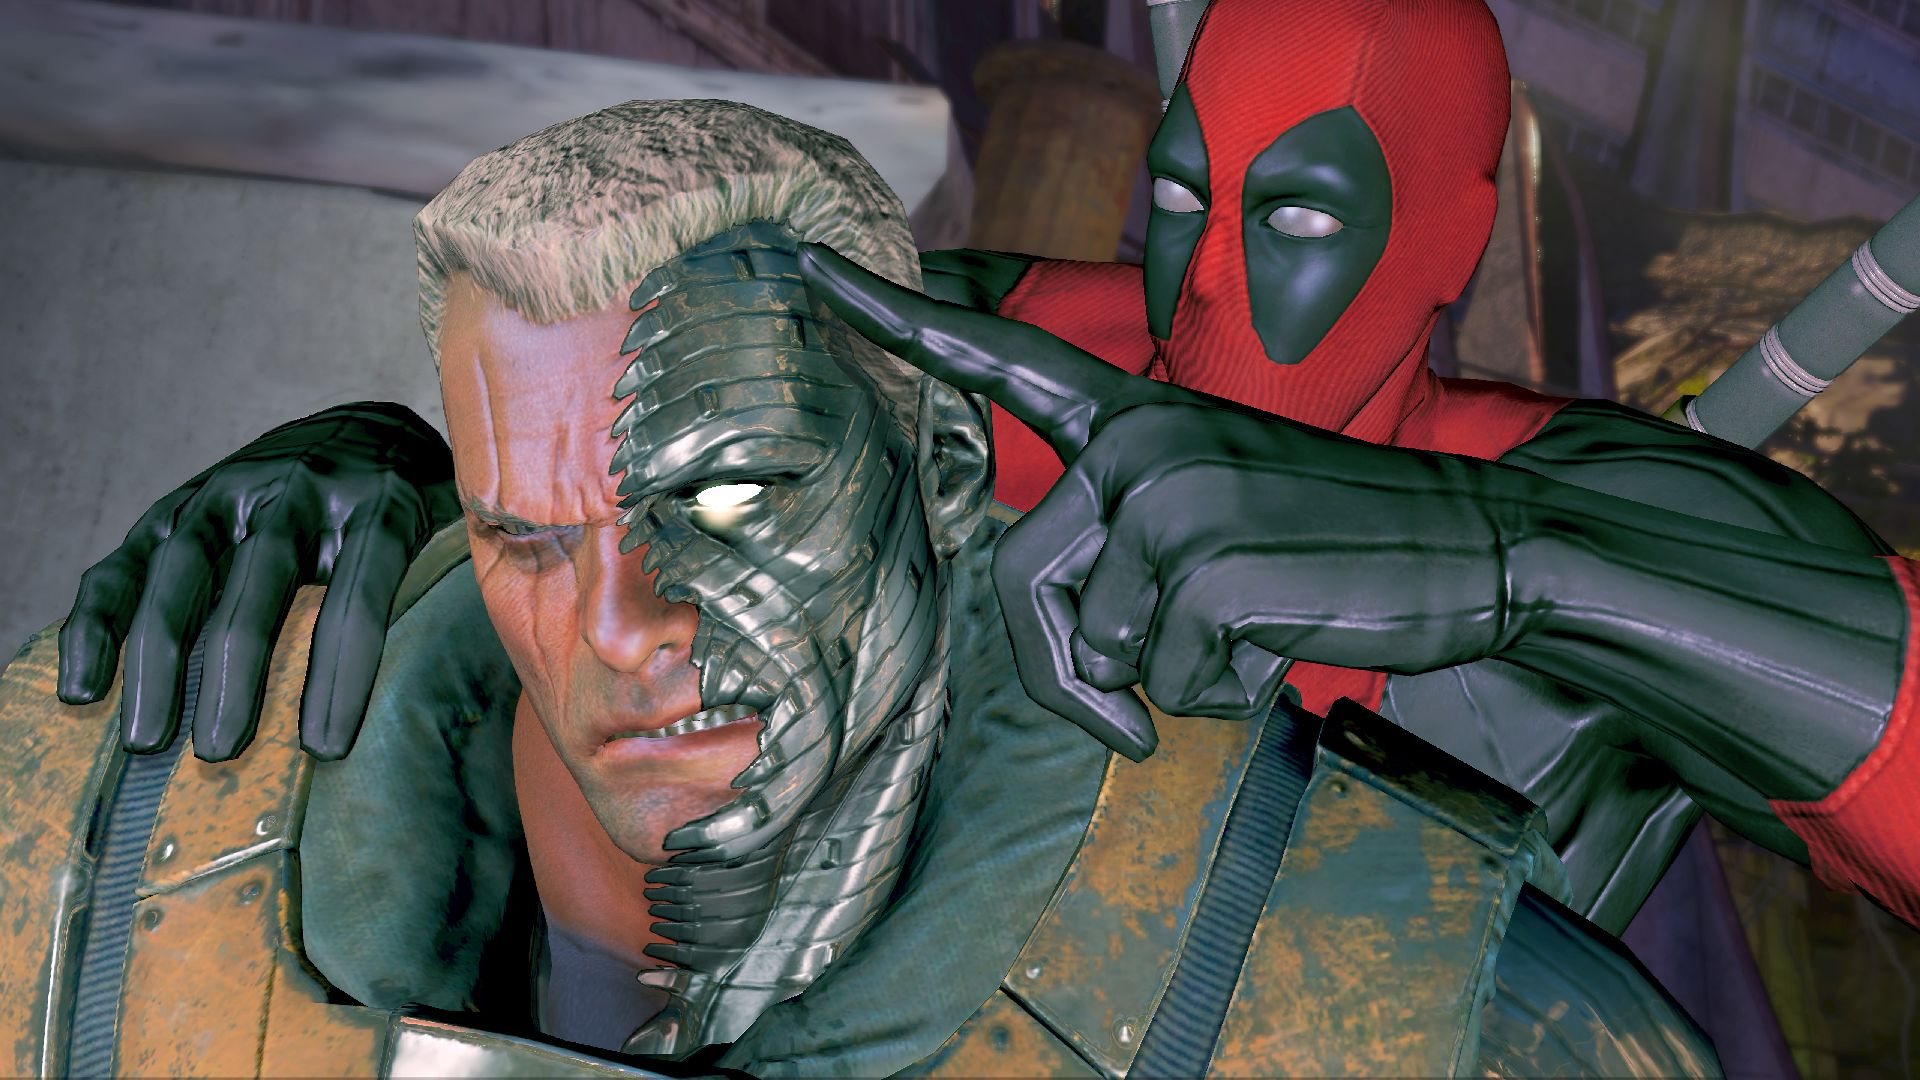 deadpool-jeu-video-image-screenshot2A